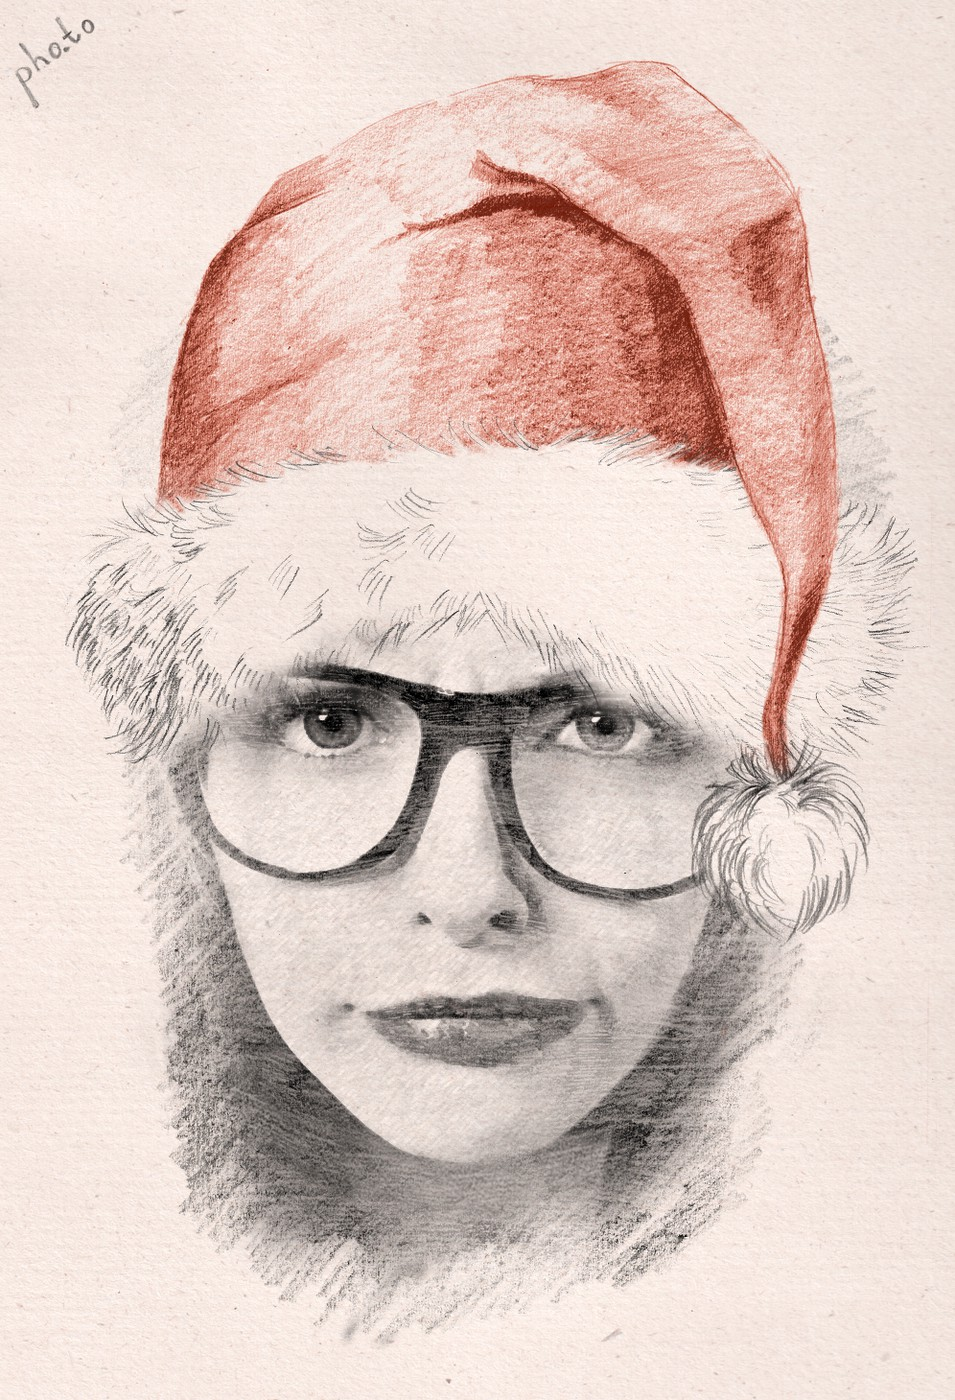 Sketch drawing of a funny girl in glasses wearing Santa hat